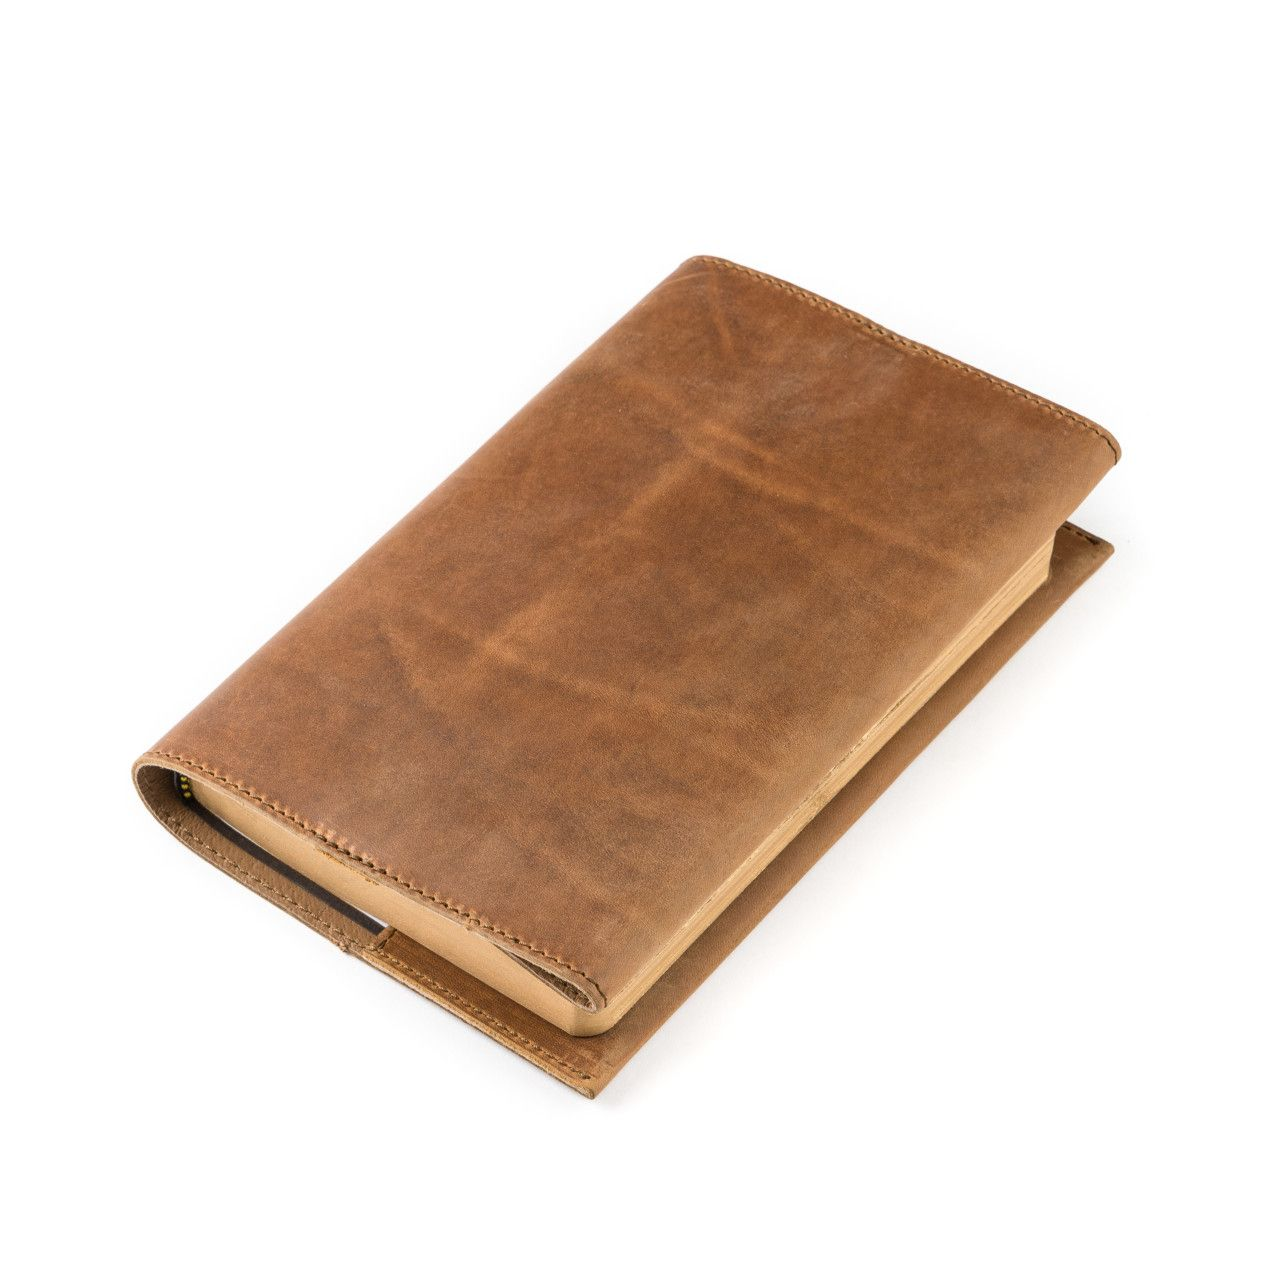 leather book cover small in tobacco leather